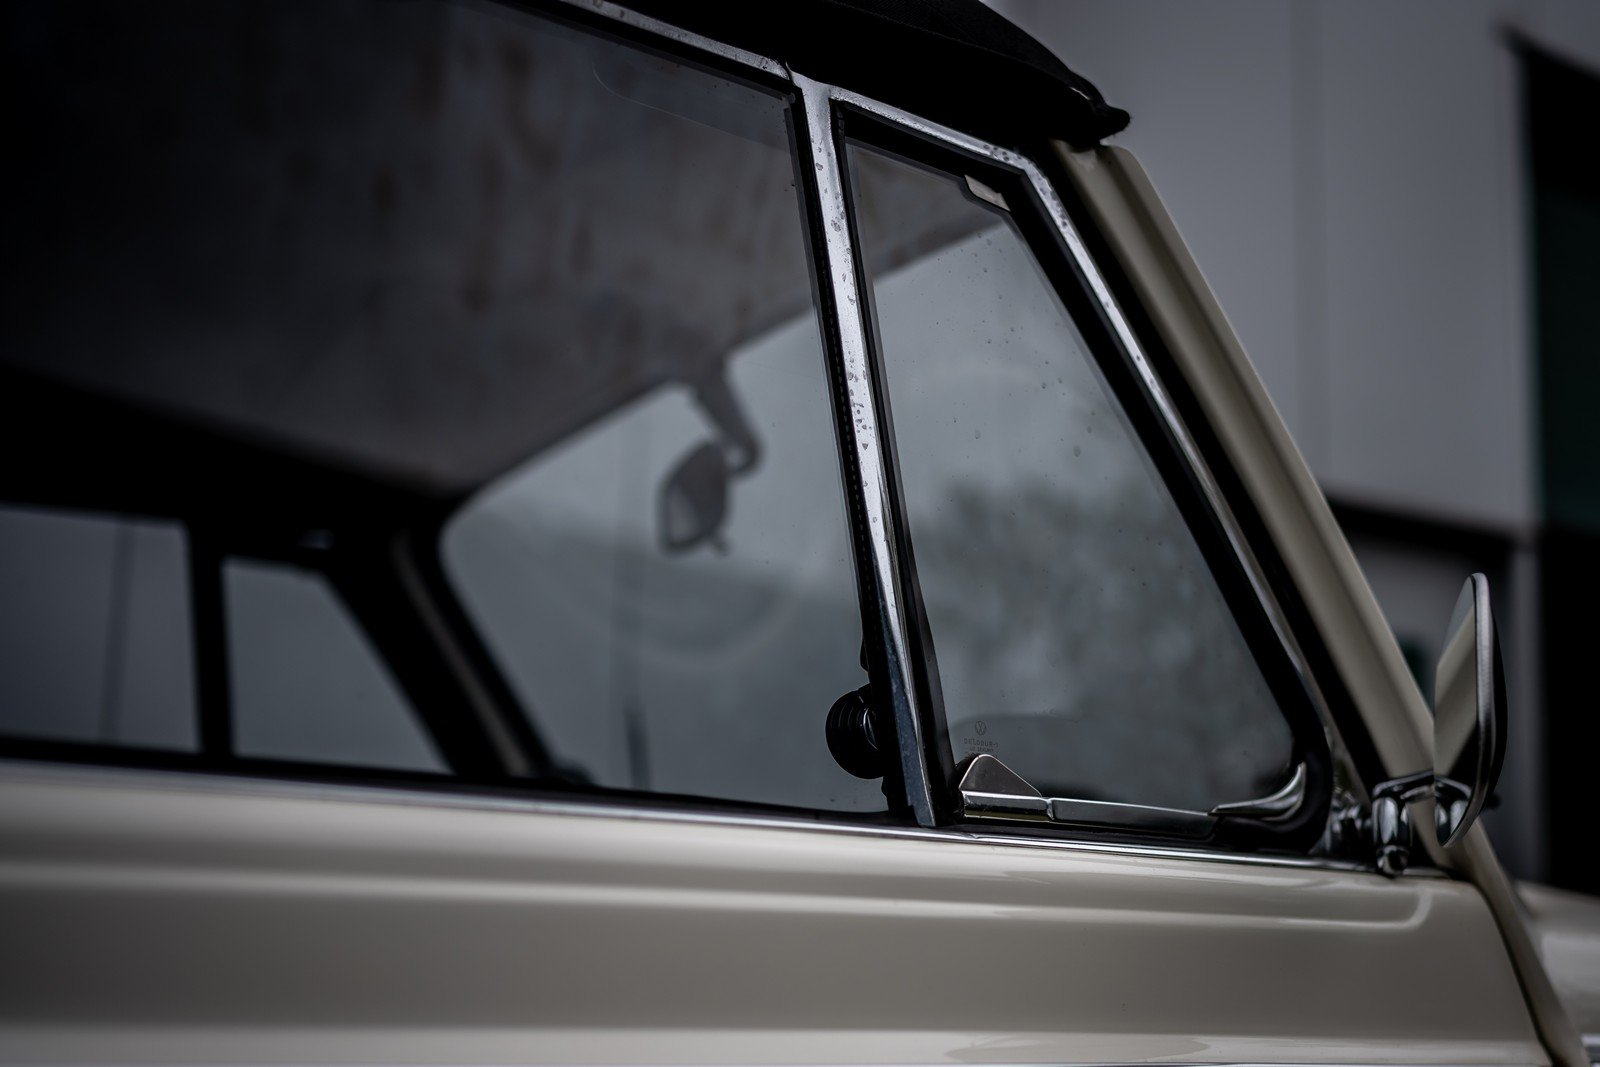 1973 Volkswagen Beetle Type 1303 Cabriolet For Sale (picture 31 of 39)